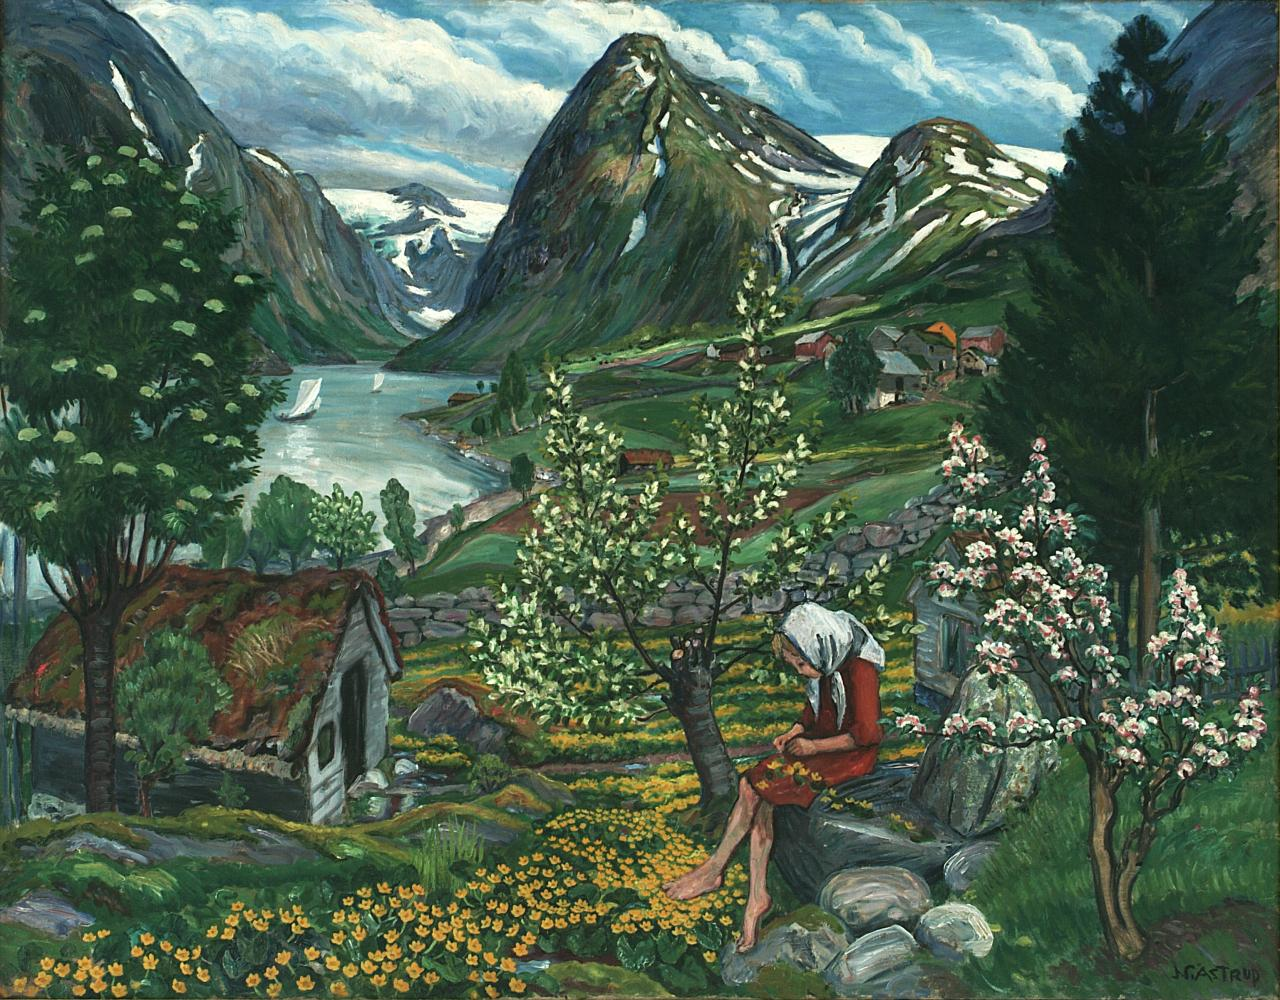 'Kari: Motif from Sunde.' Image: Courtesy of Nikolai-Astrup.no. Unauthorized use is prohibited.